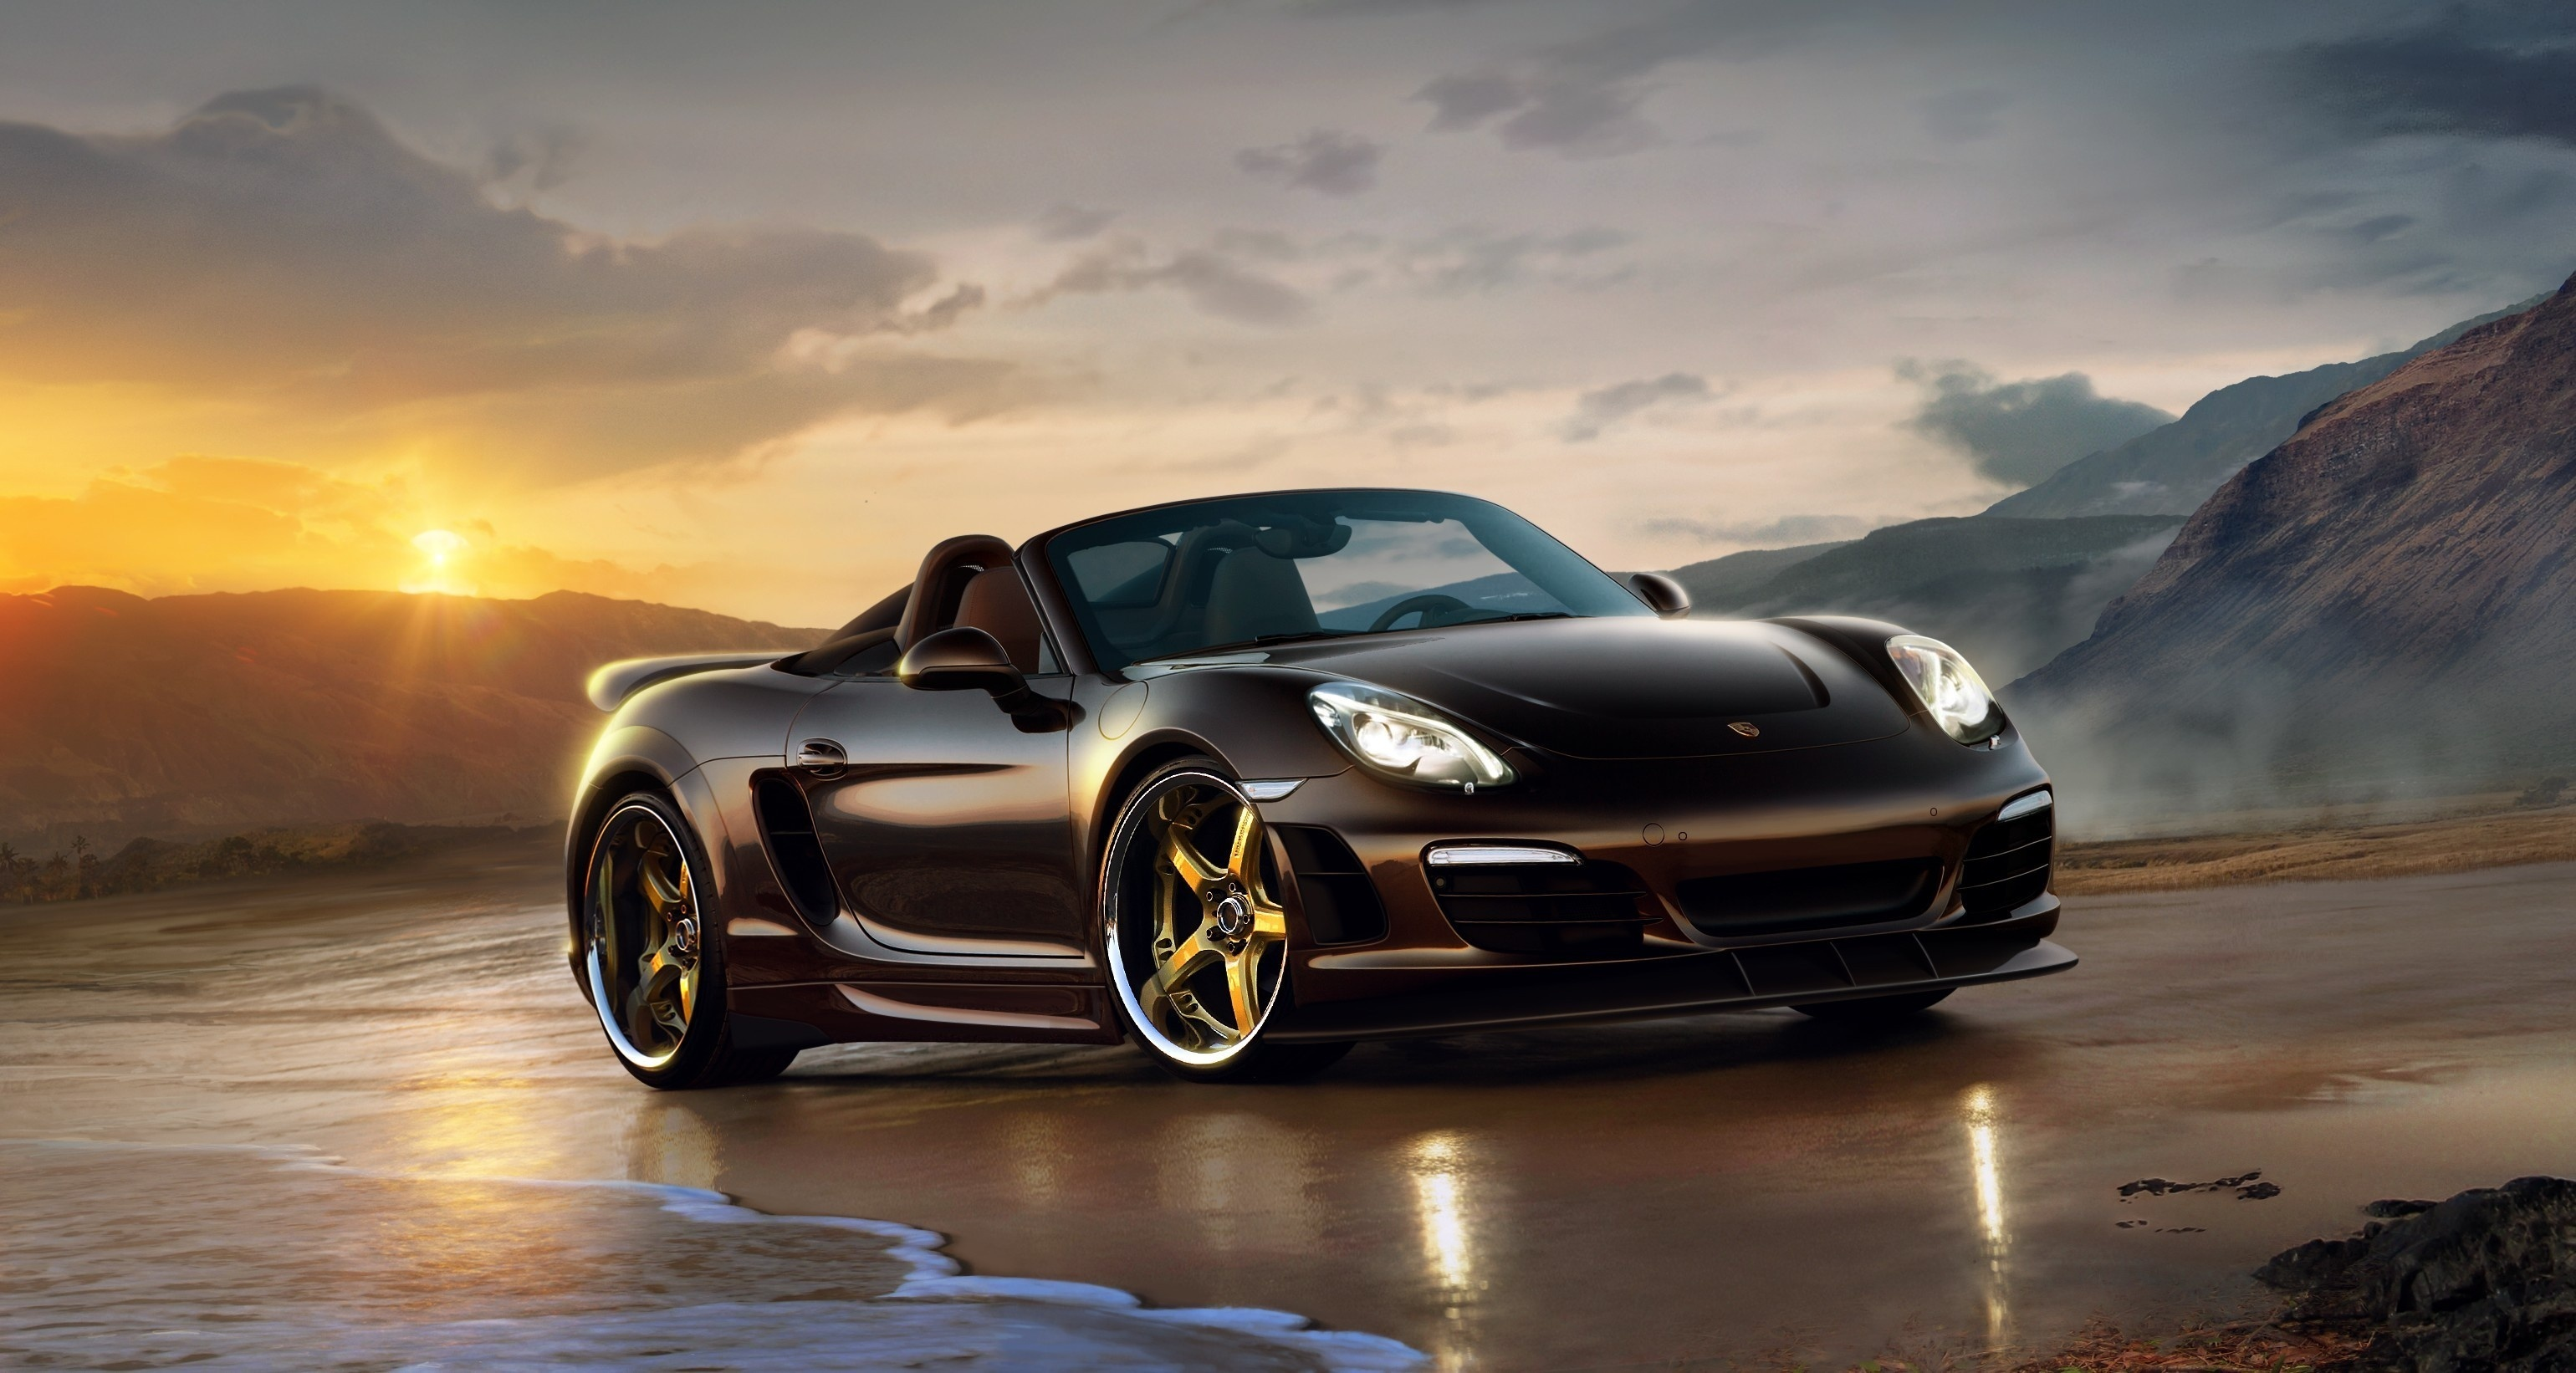 porsche wallpapers, pictures, images